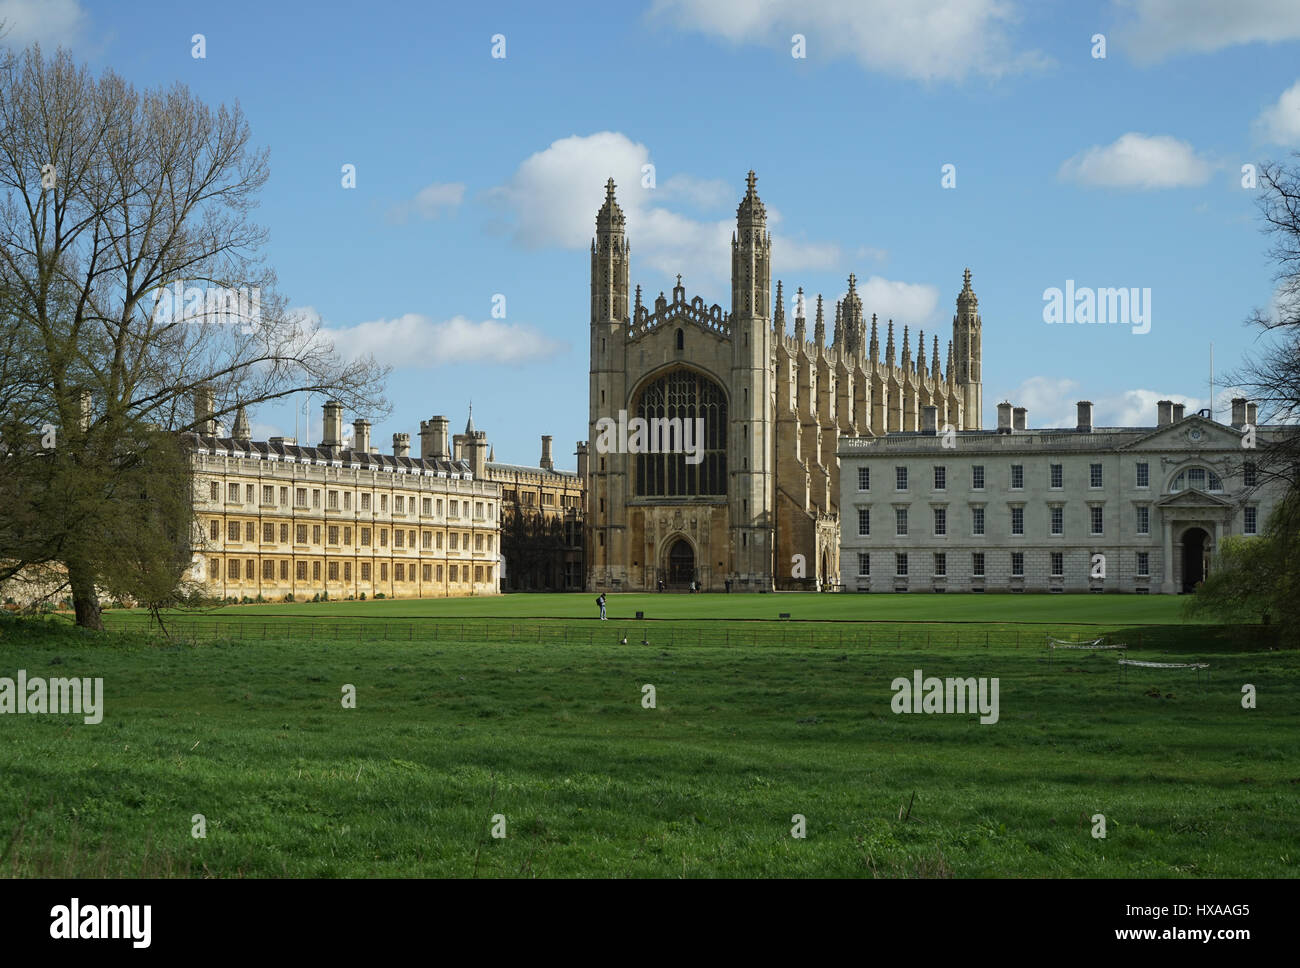 King's College , Cambridge from The Backs. - Stock Image